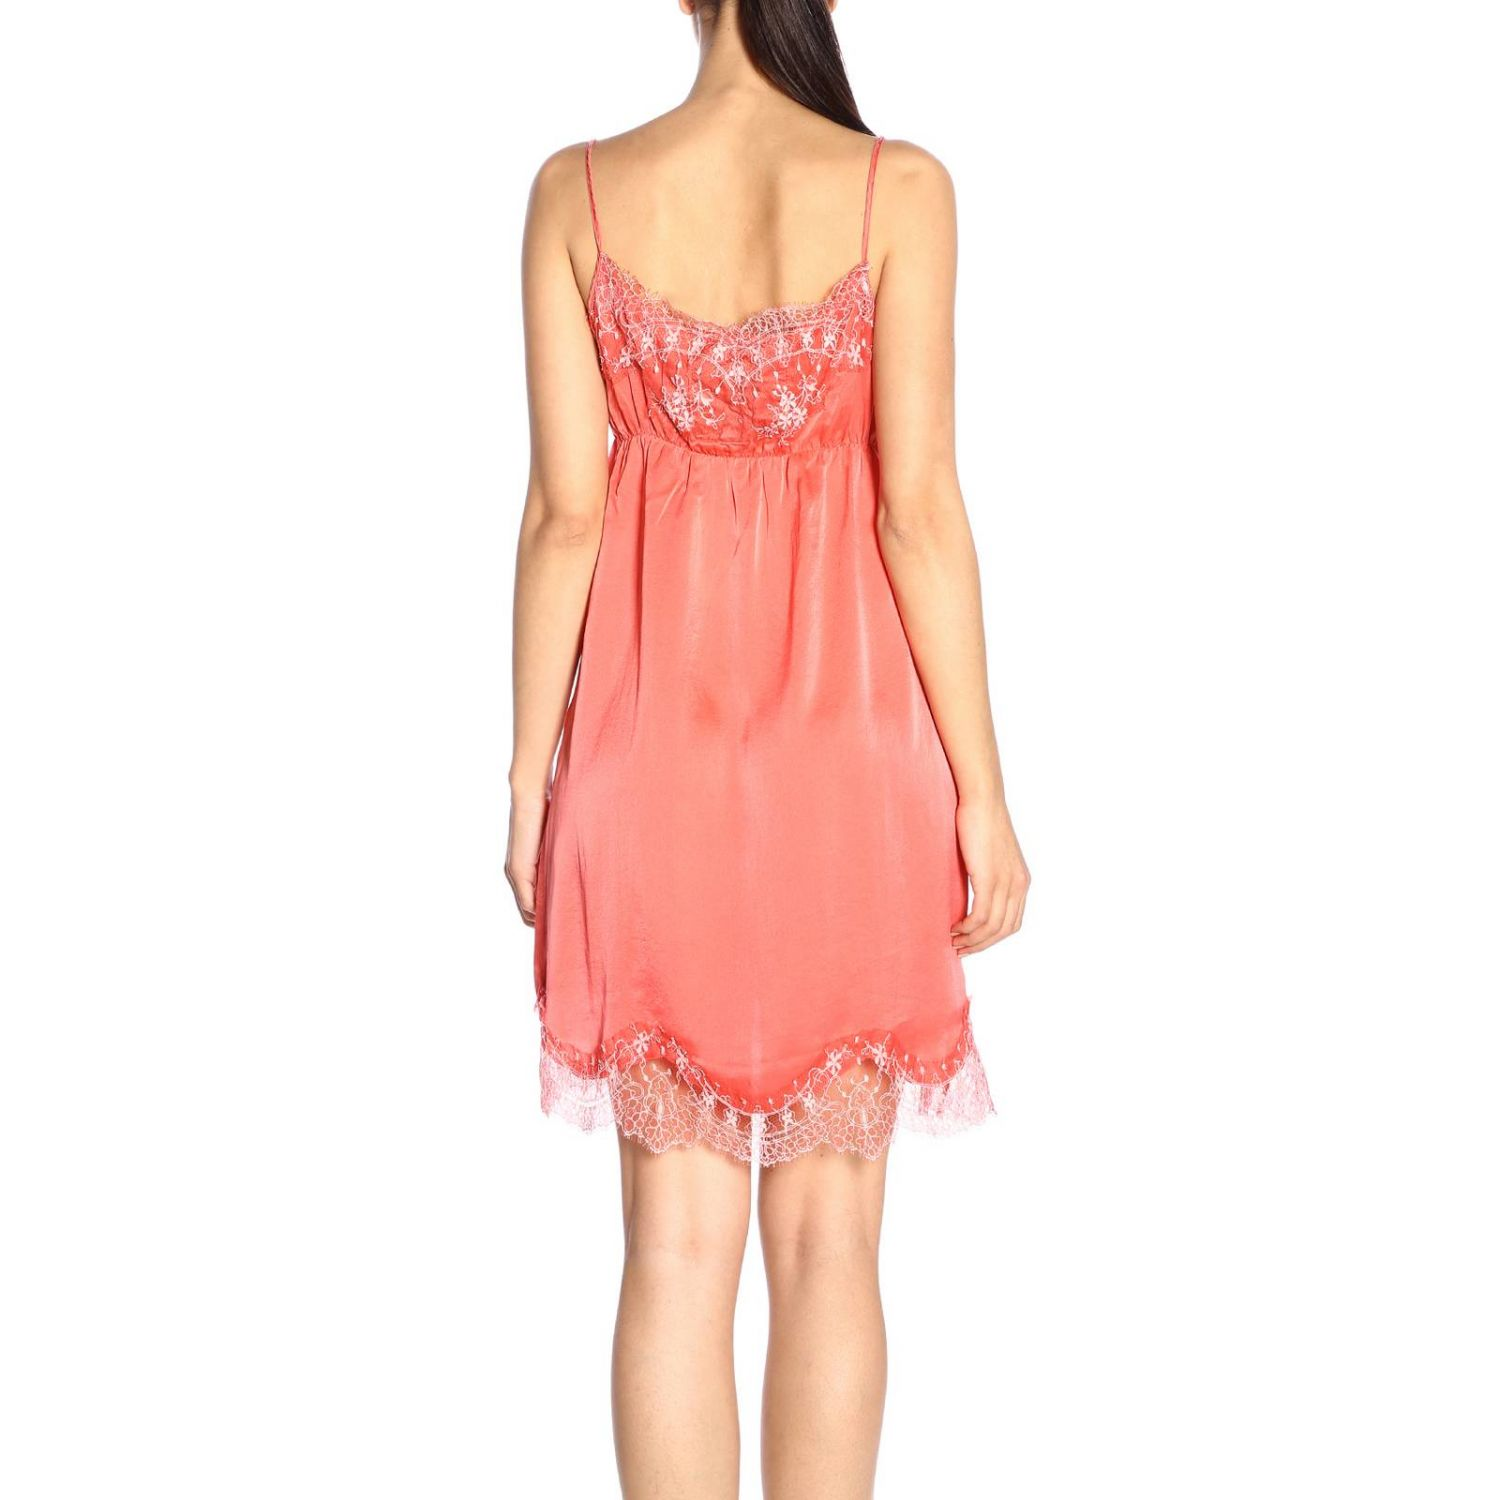 Intimo donna Pink Memories fuxia 3